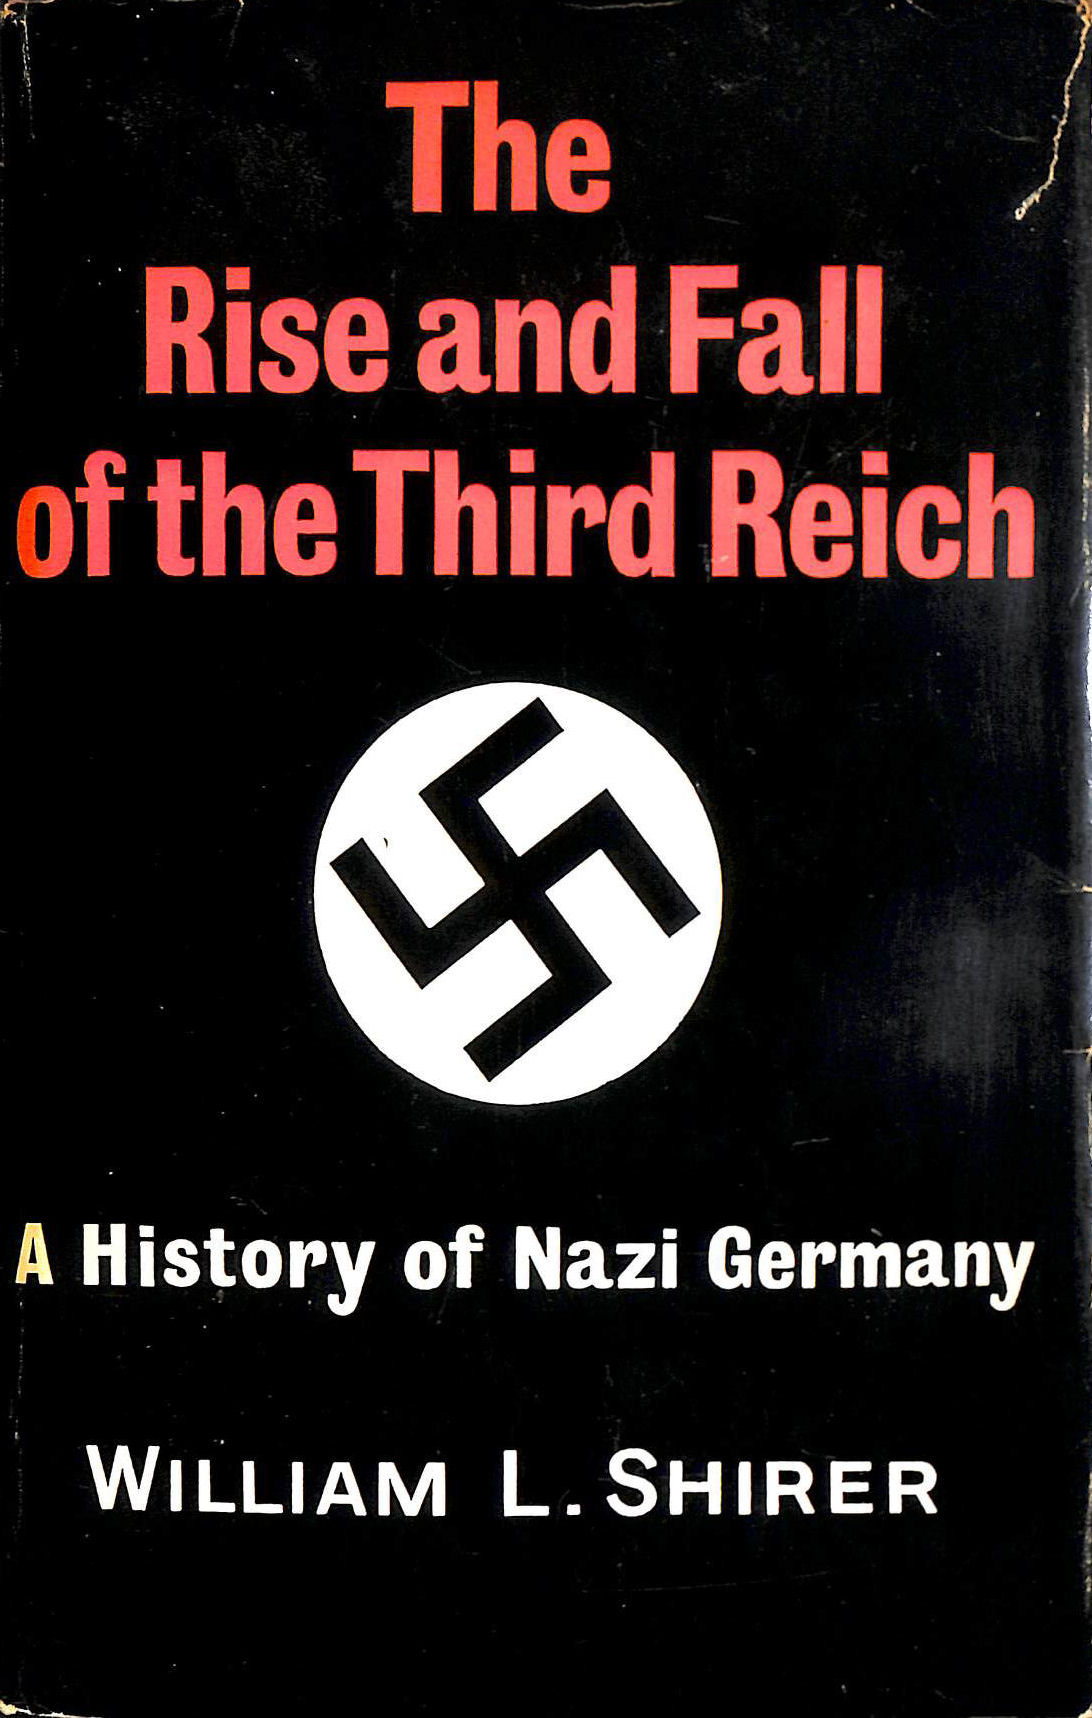 The Rise and Fall of the Third Reich: A History of Nazi Germany, William L. Shirer